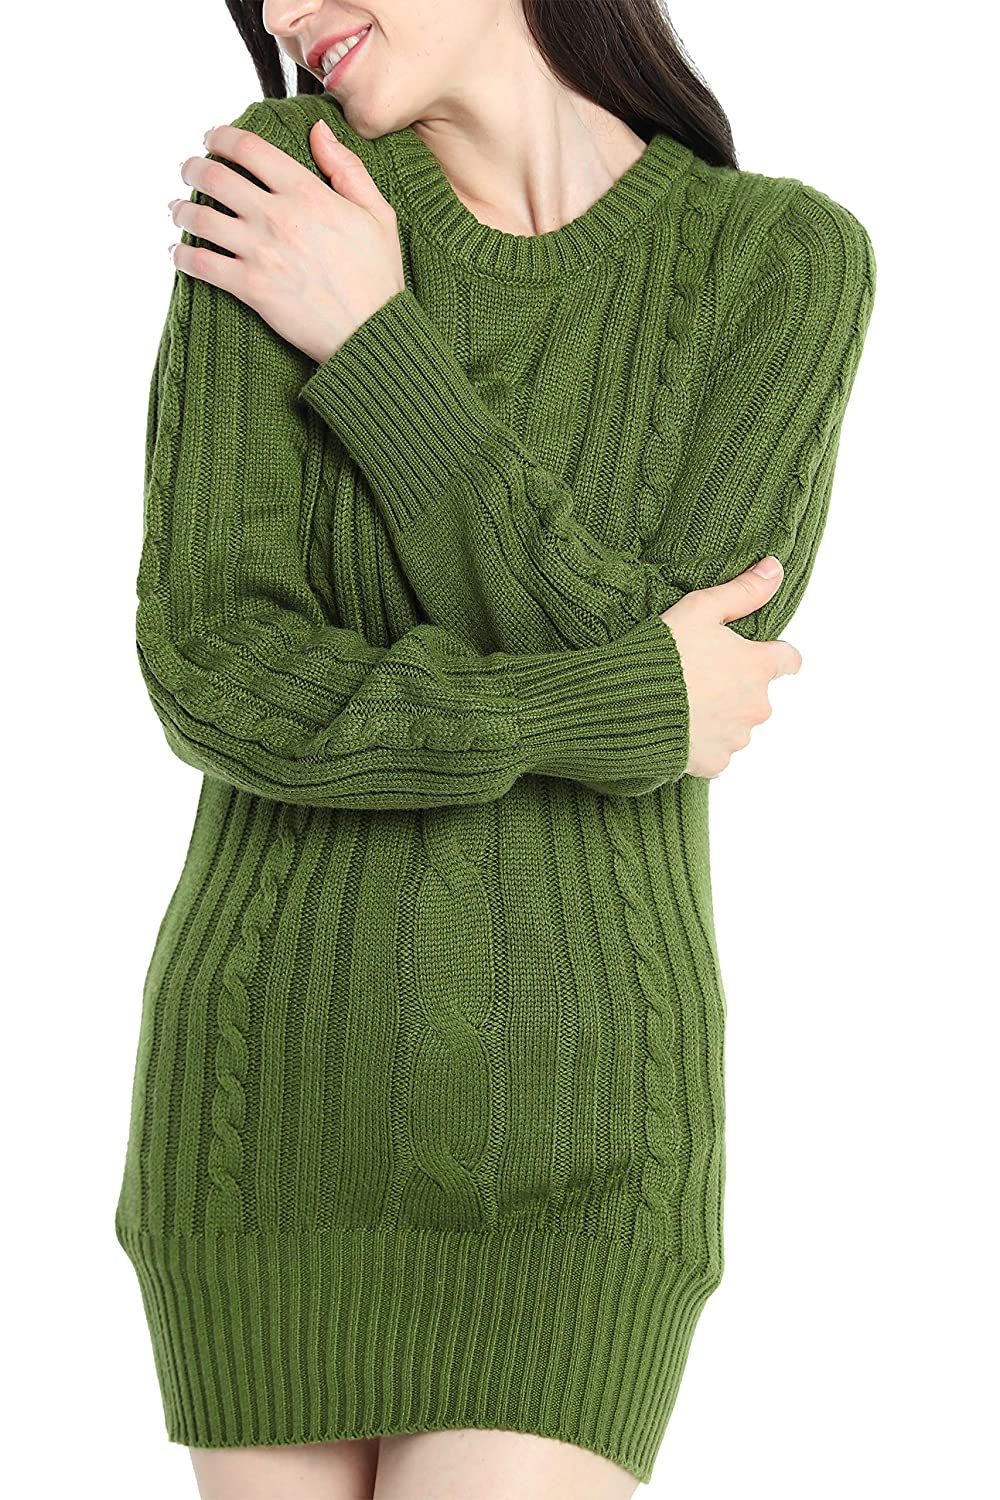 84320862acd8f Liny Xin Women's Cashmere Knitted Crewneck Long Sleeve Winter Wool Pullover  Long Sweater Dresses Tops at Amazon Women's Clothing store: